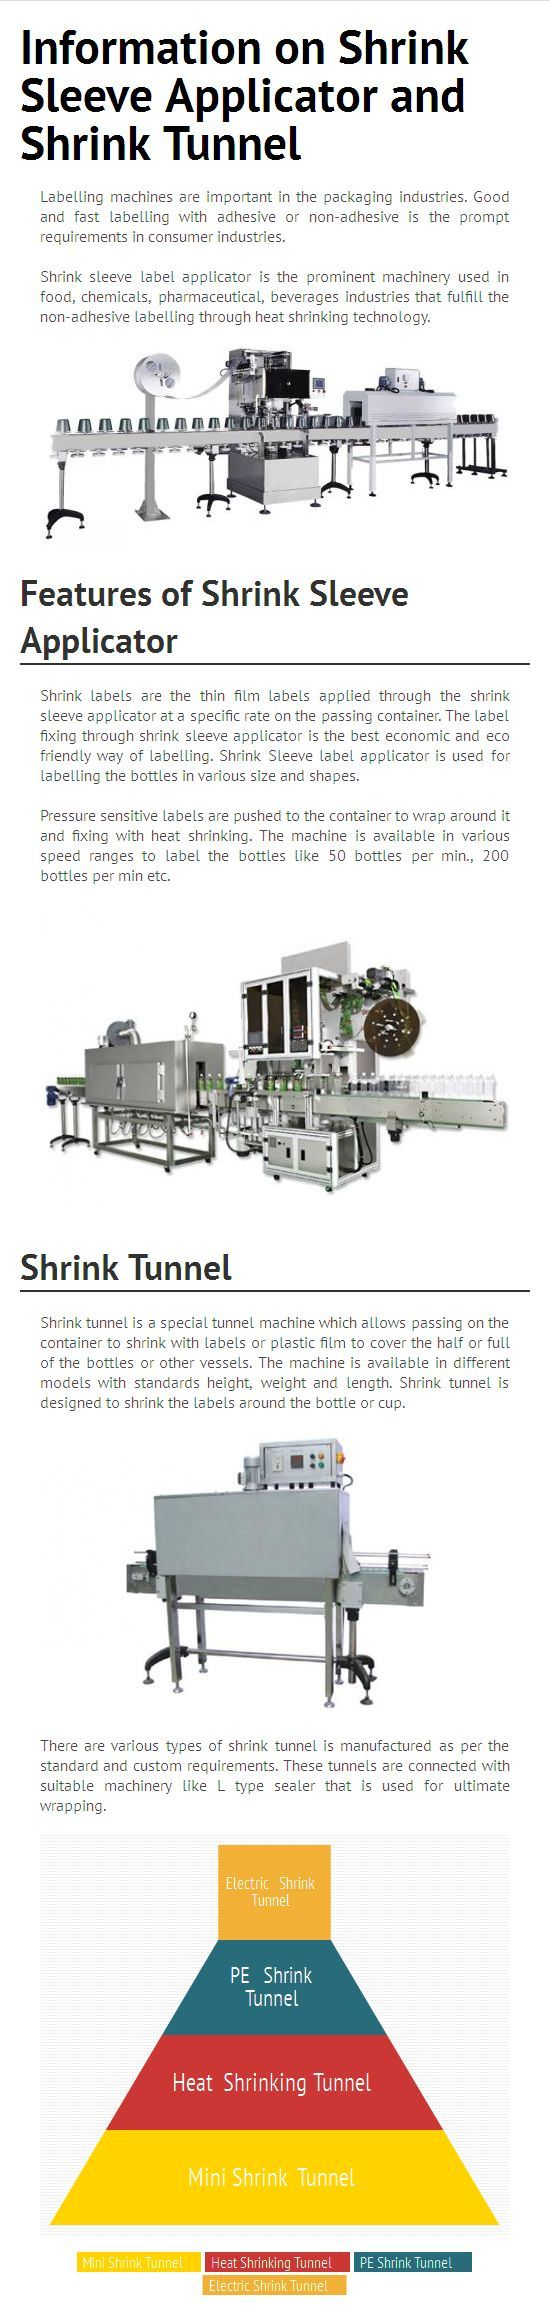 Get information on shrink sleeve applicator and tunnel machine including variety of machine models, sizes, features etc. For more info: http://www.multipackmachinery.com/shrink-tunnels/